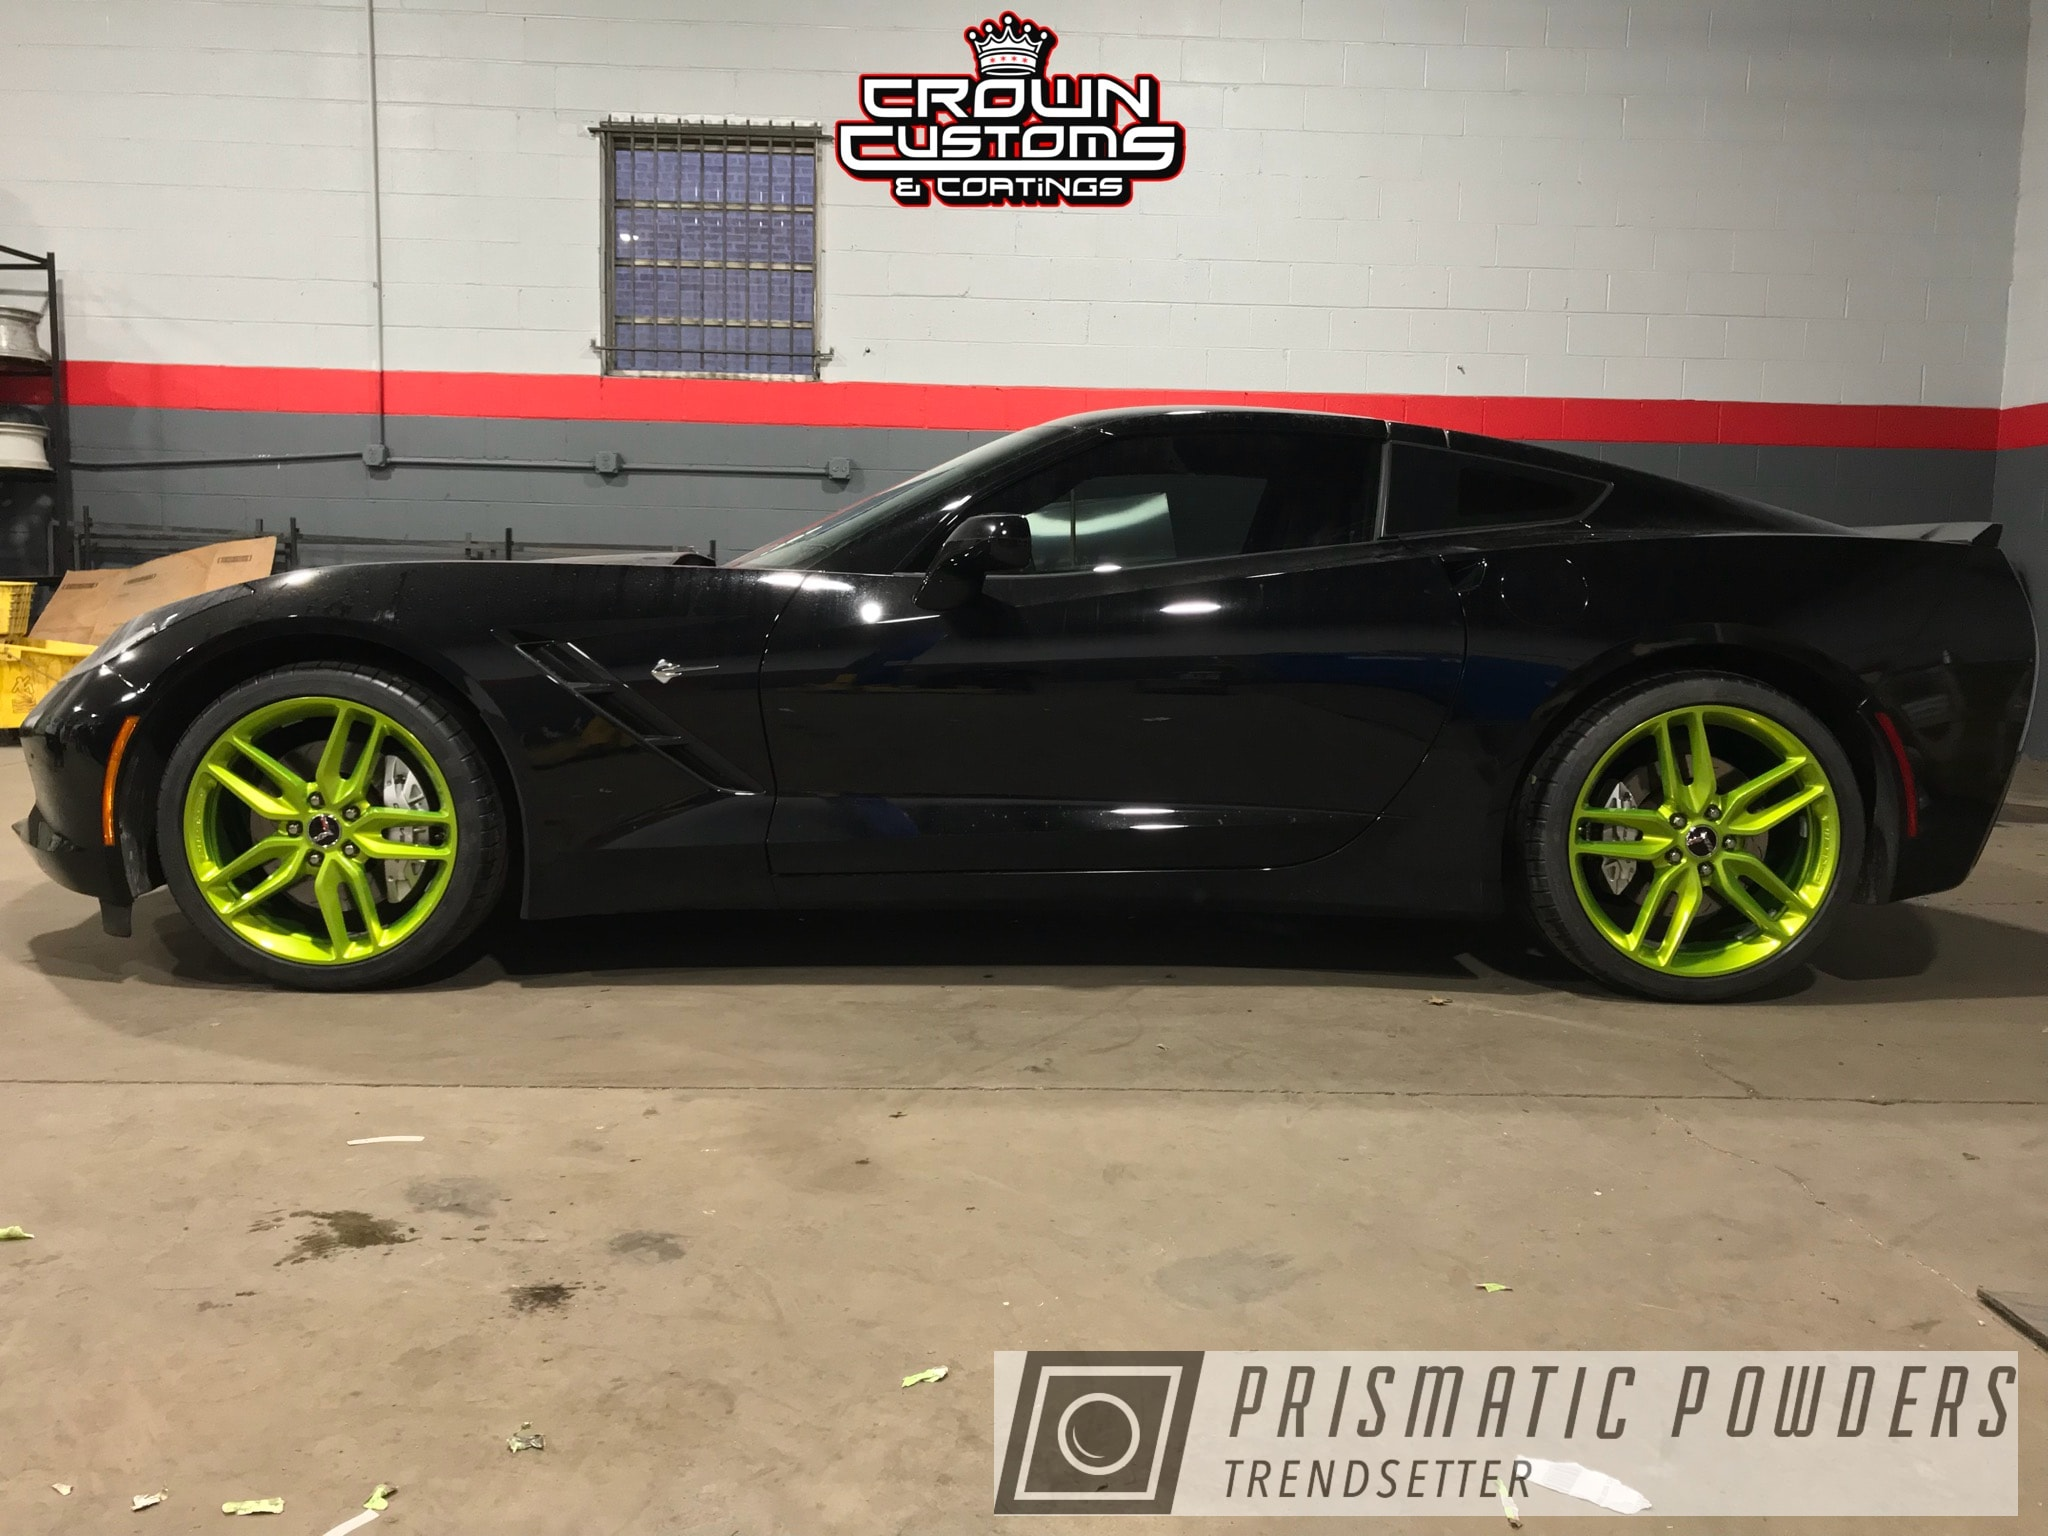 Powder Coating: Clear Vision PPS-2974,Chevrolet,Illusion Shocker PMB-10050,Corvette Wheels